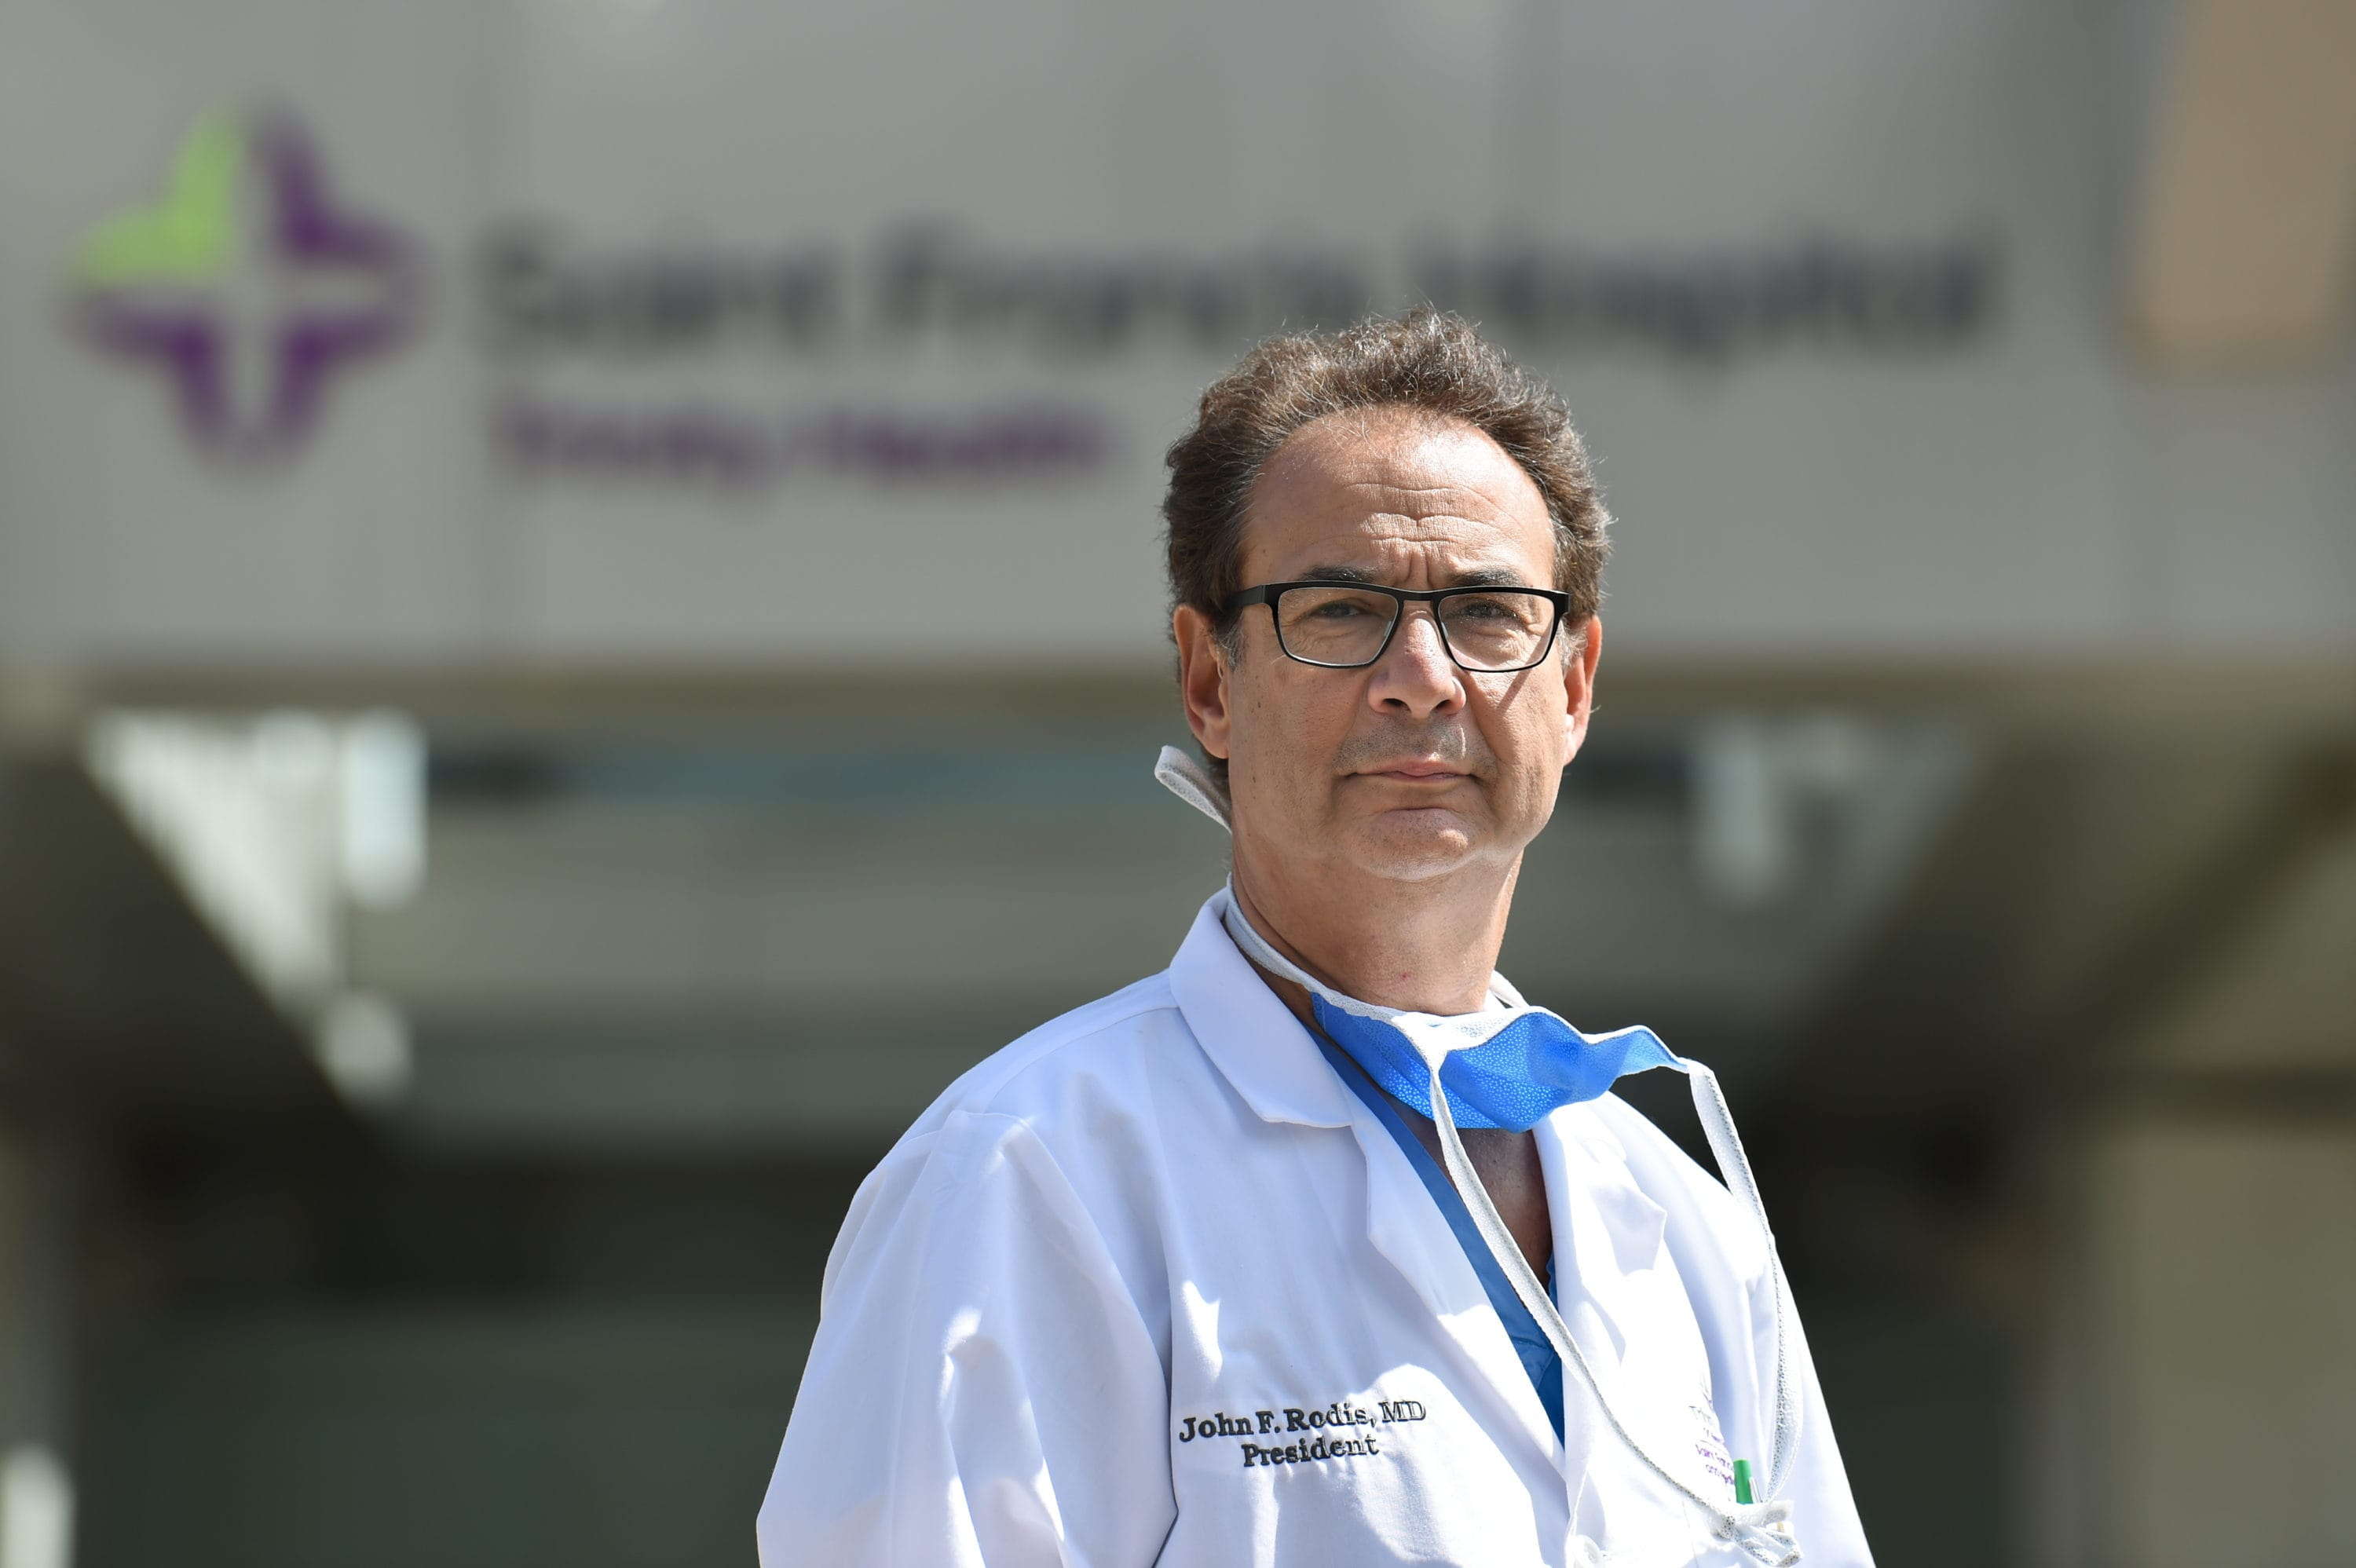 'We'll get through this.' Head of Saint Francis Hospital talks about management in a time of crisis